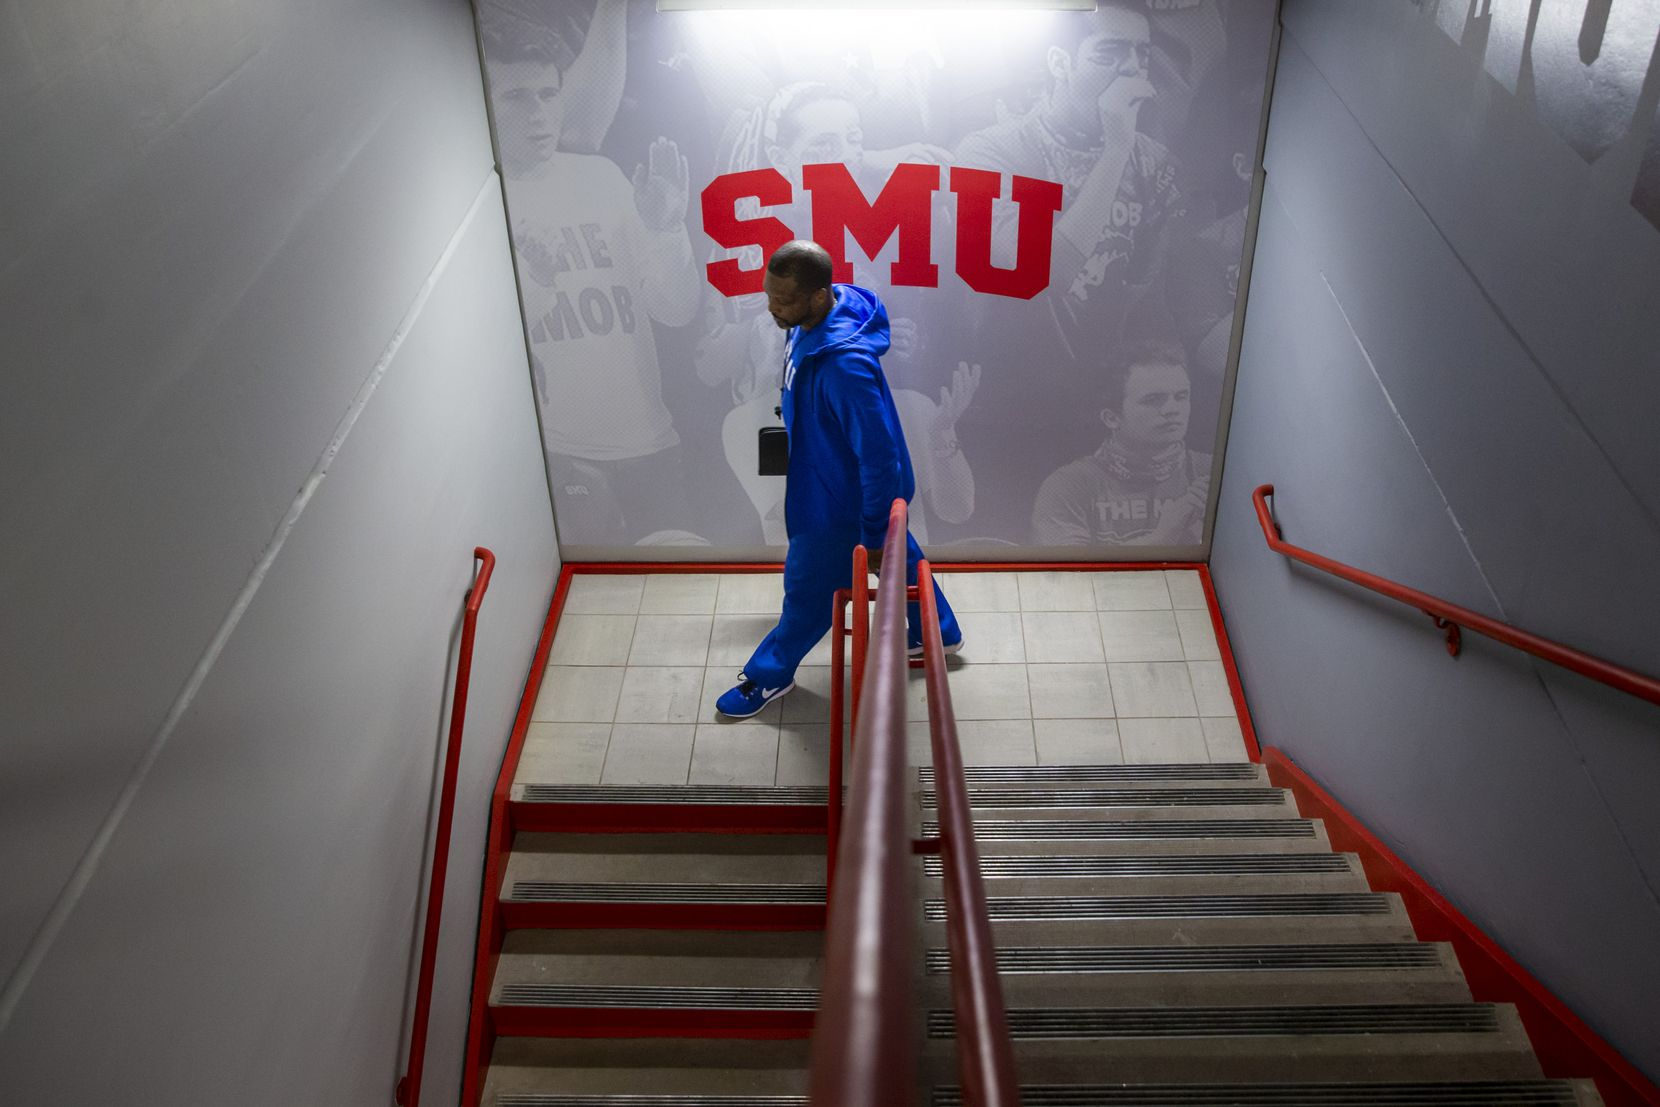 Travis Mays, head coach of Southern Methodist University women's basketball, walks down a flight a stairs to attend a team practice at the SMU Crum Basketball Center. (Lynda M. Gonzalez/The Dallas Morning News)